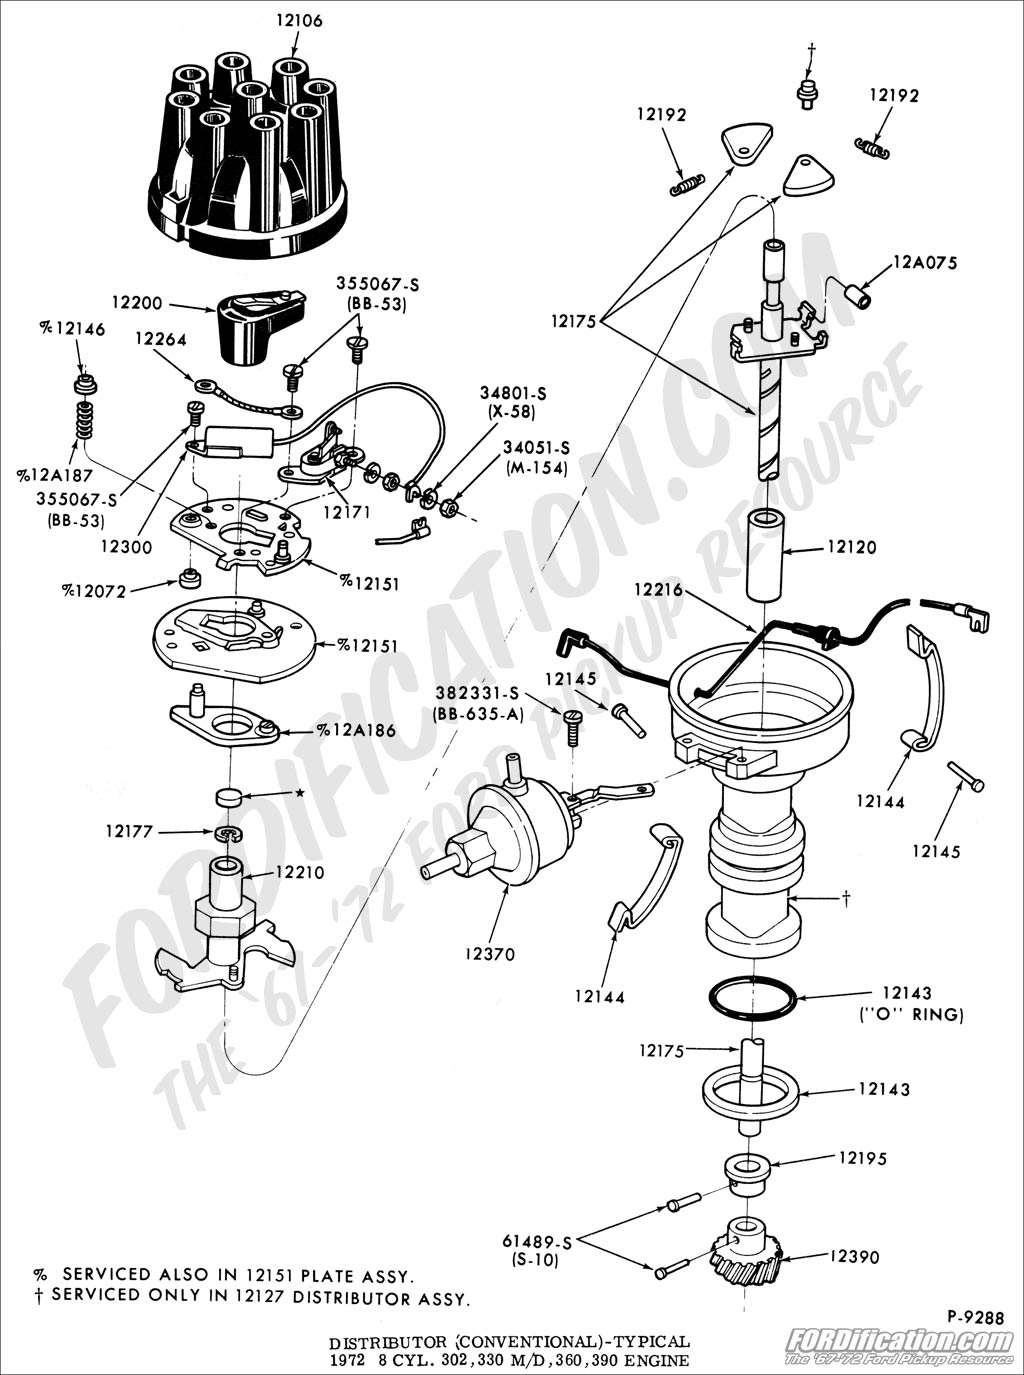 model a ford generator wiring diagram ford truck technical drawings and schematics - section i ... a ford 302 wiring diagram